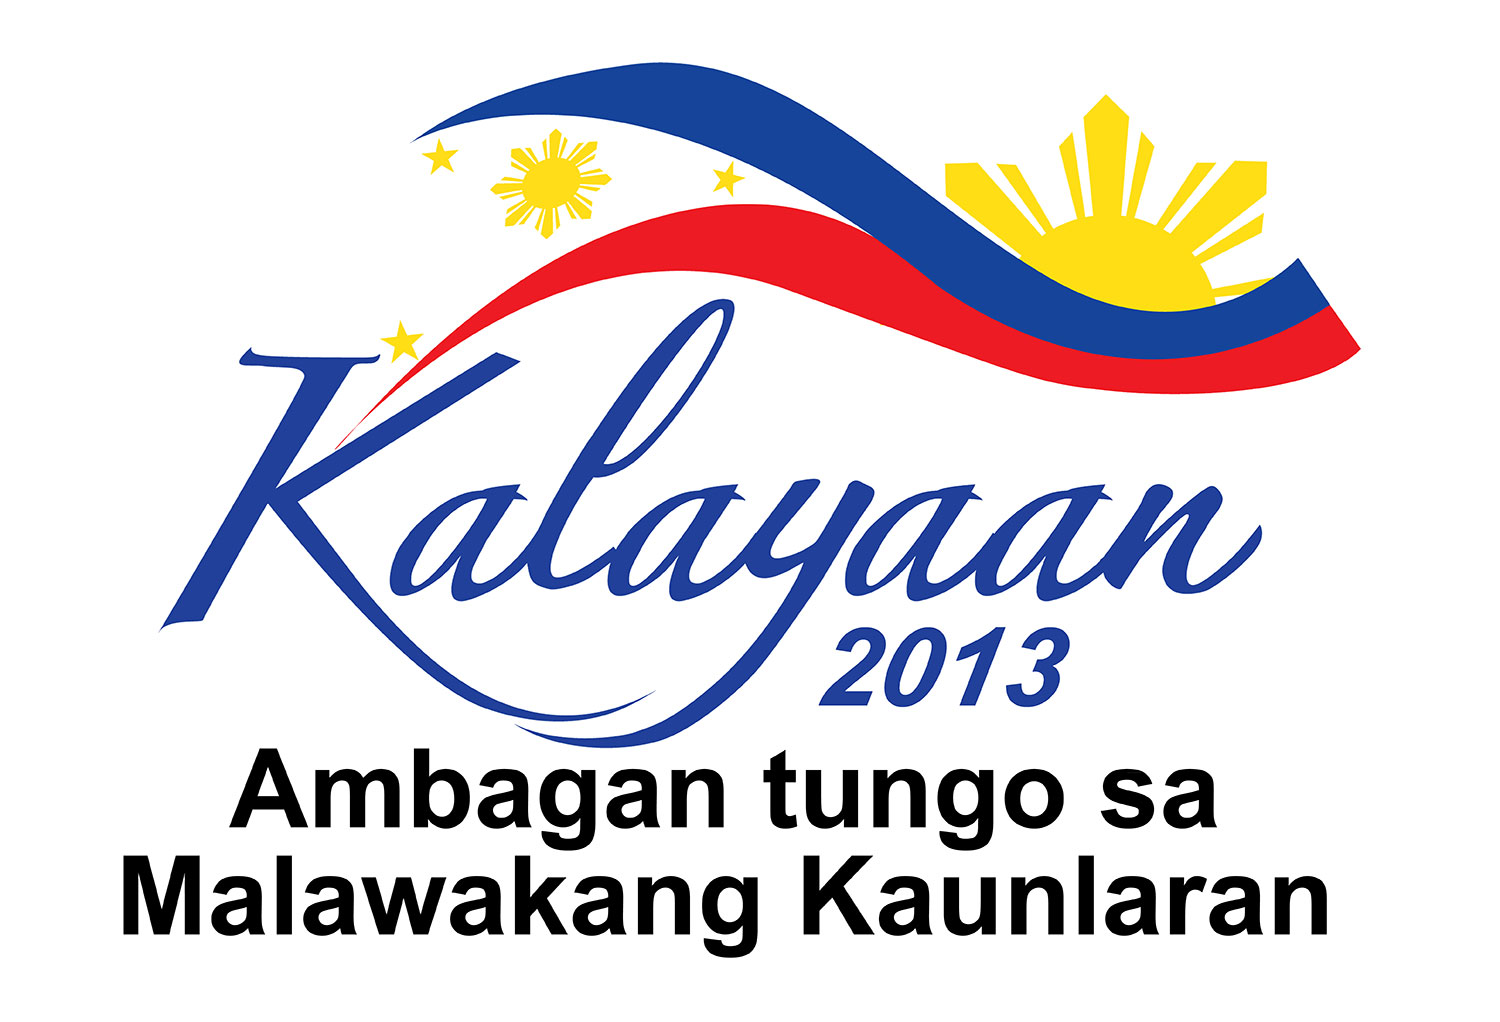 Philippine independence day pictures 209 best Philippine Independence images on Pinterest Flags